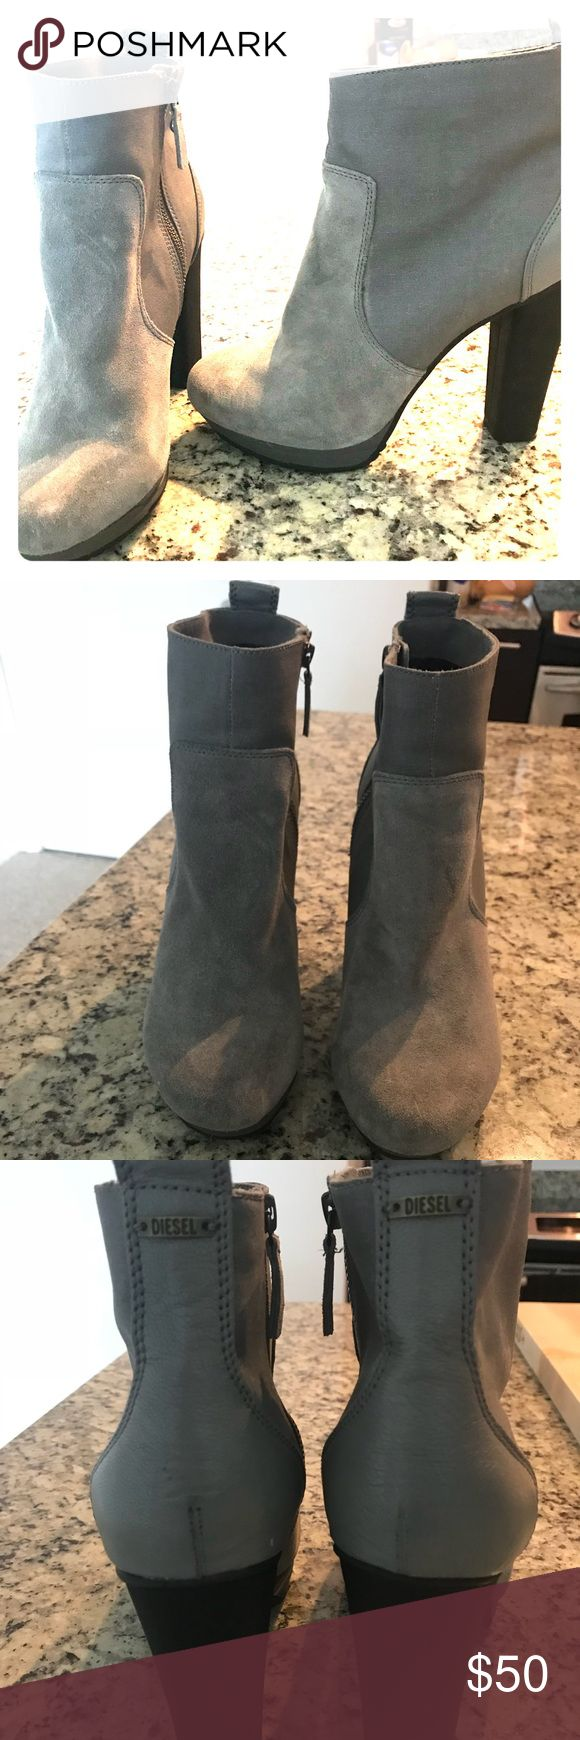 "Diesel Heeled Gray Booties Excellent condition gray suede booties with 5"" heel. Really comfortable and great for fall and winter! Diesel Shoes Ankle Boots & Booties"